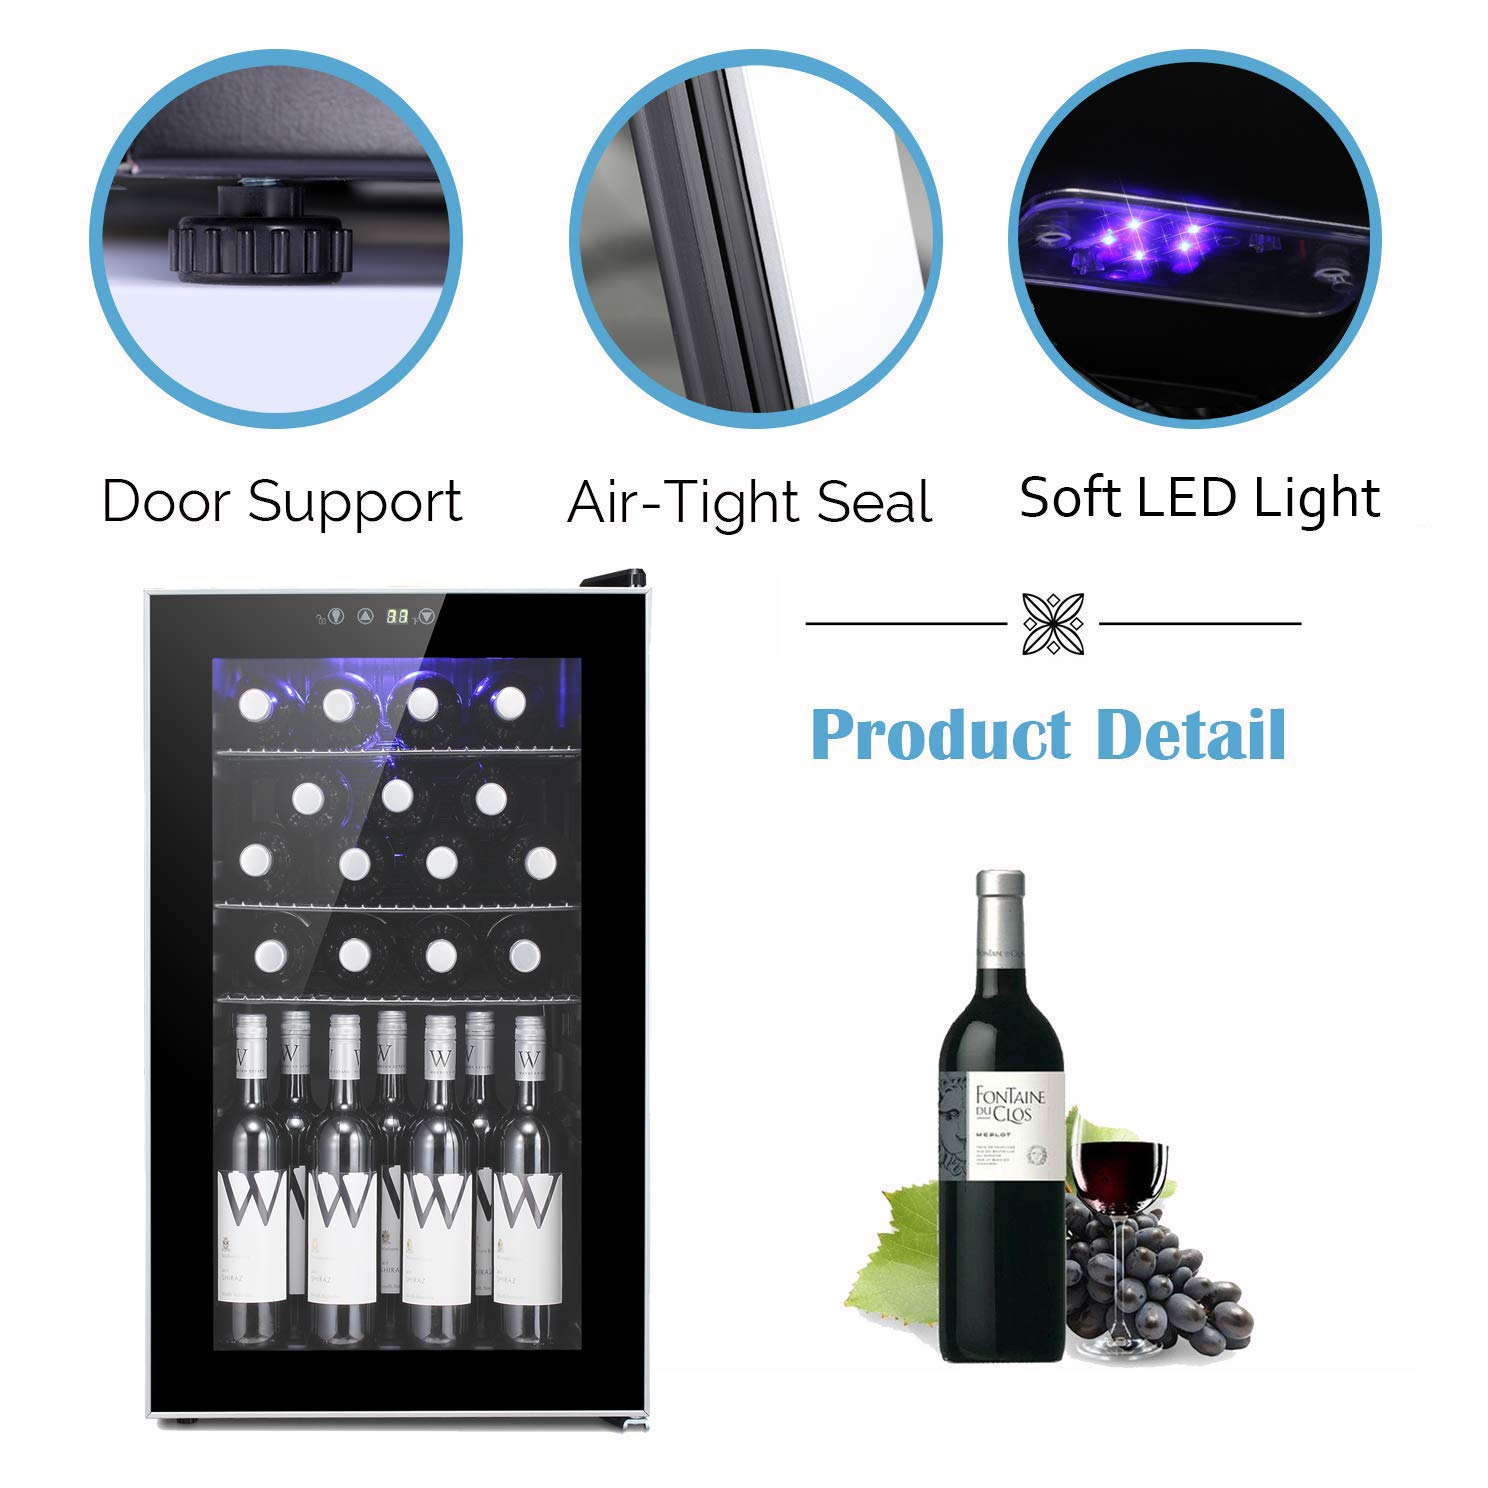 24 Bottle Wine Cooler Counter Top Wine Chiller Cabinet Refigerator with Glass Door and Touch Panel Digital Temperature Display Compressor Wine Cellar